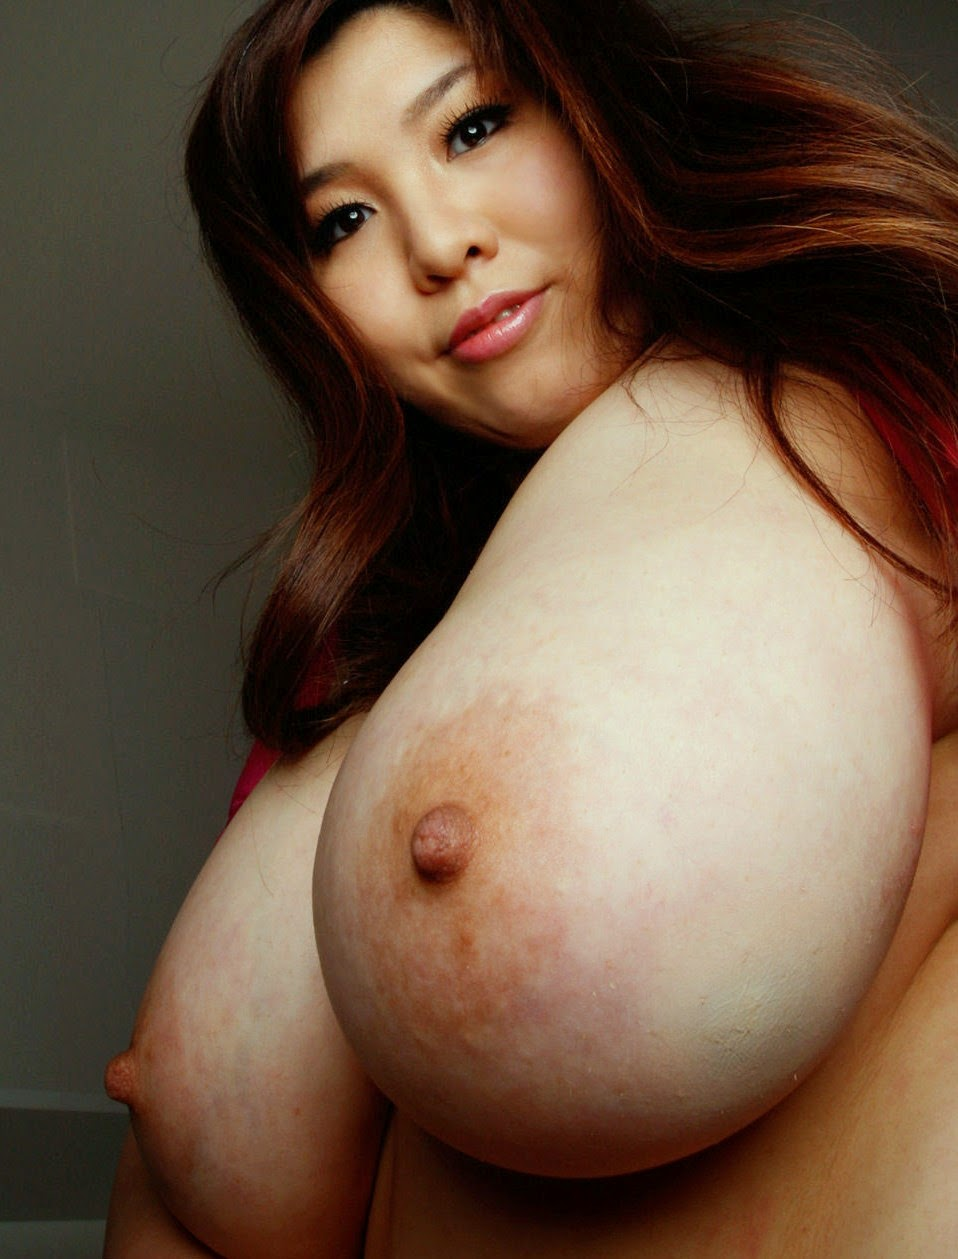 Amateur Asian With Big Boob Asian amateur with big tits